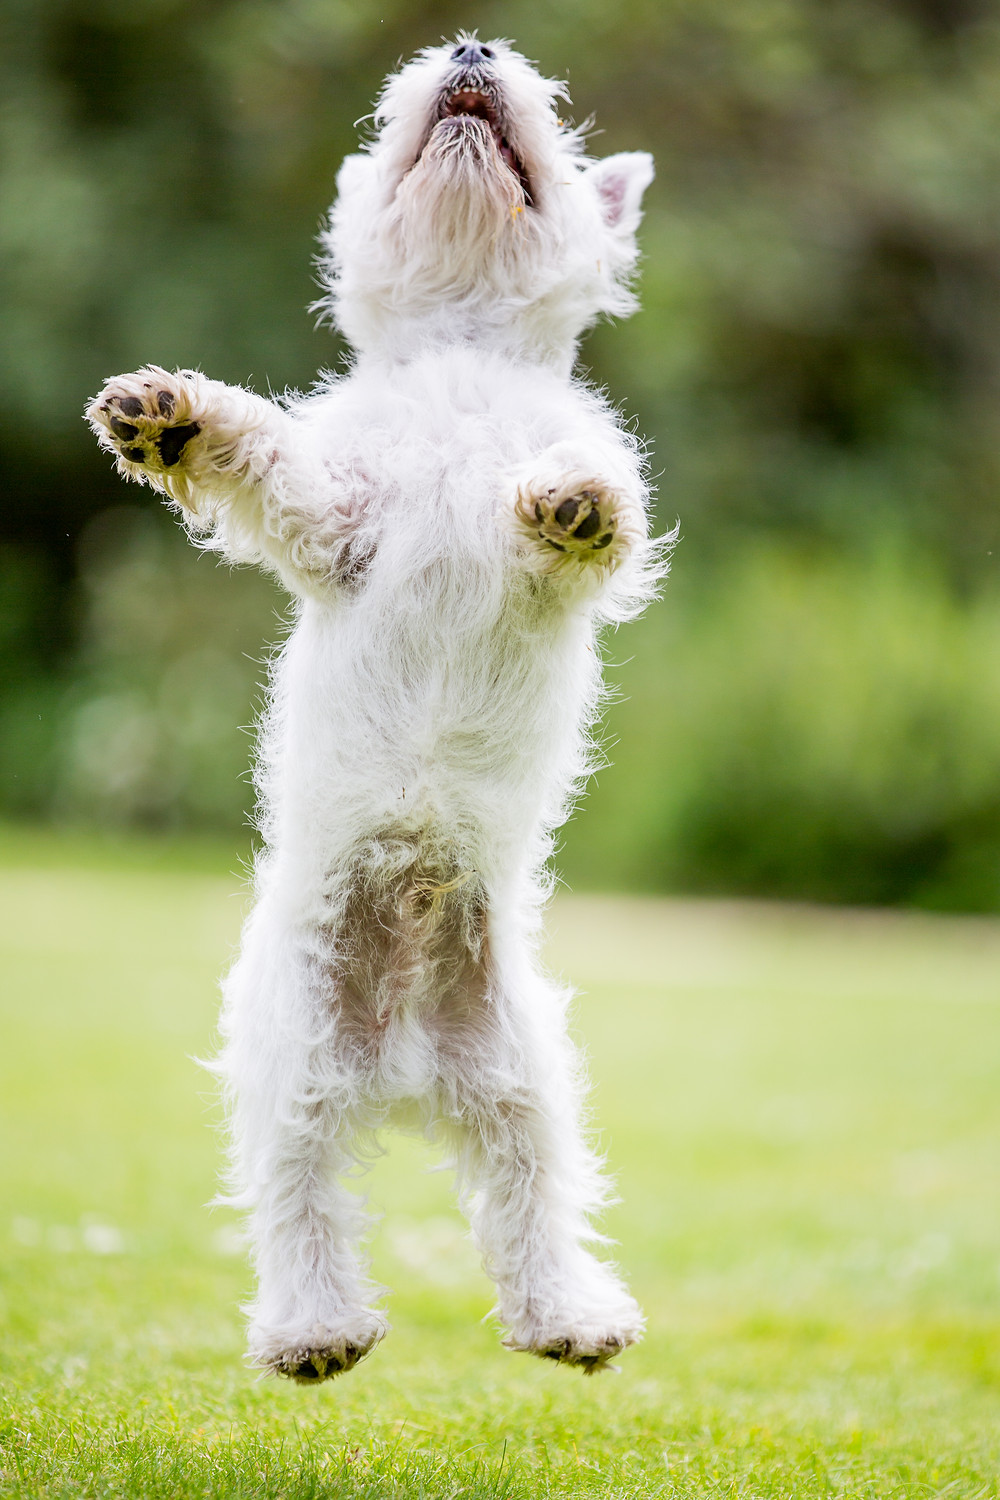 pet photography in London. West Highland Terrier - Hector jumping